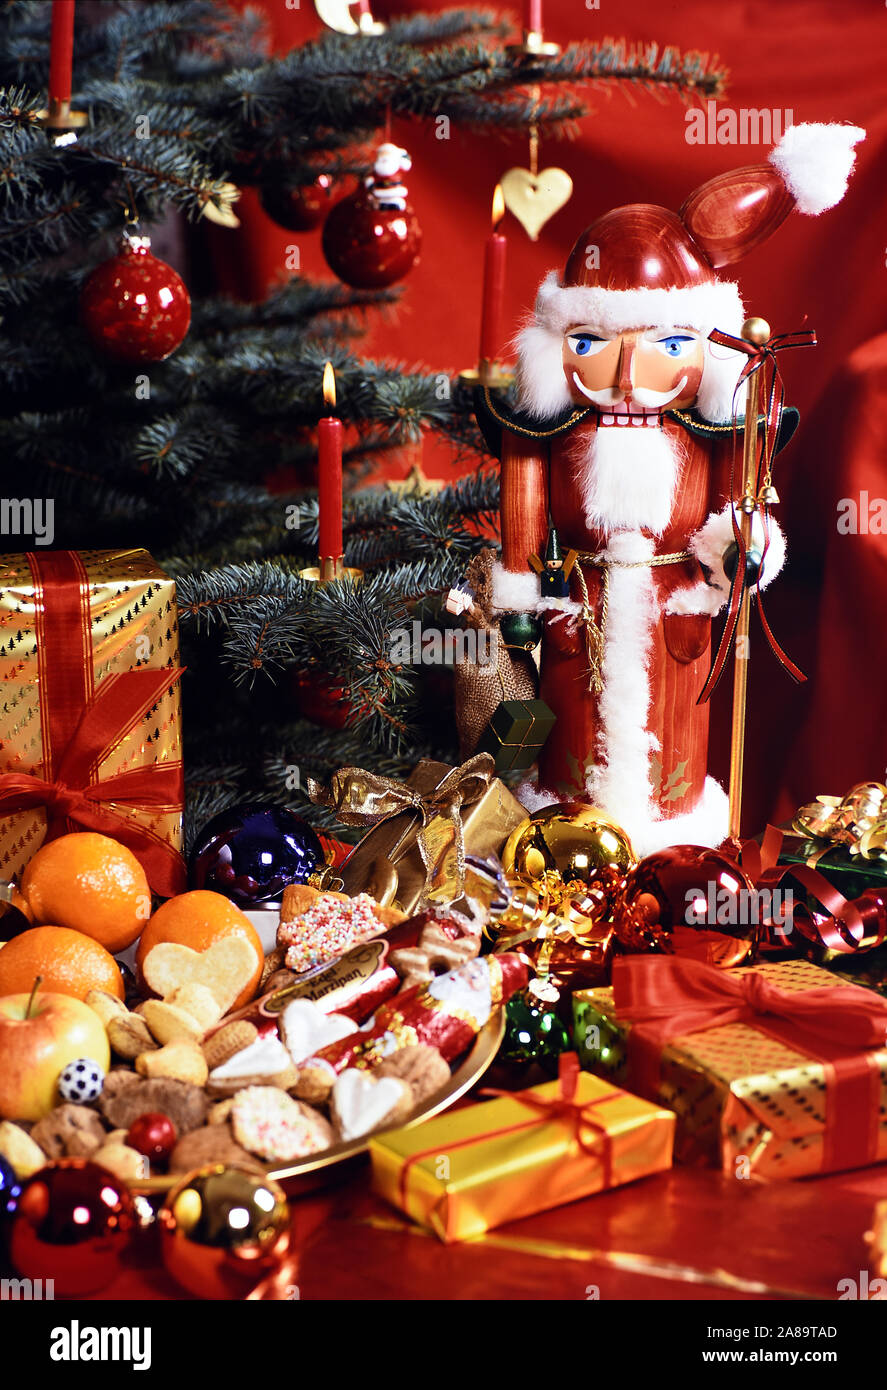 Vor Weihnachten High Resolution Stock Photography And Images Alamy